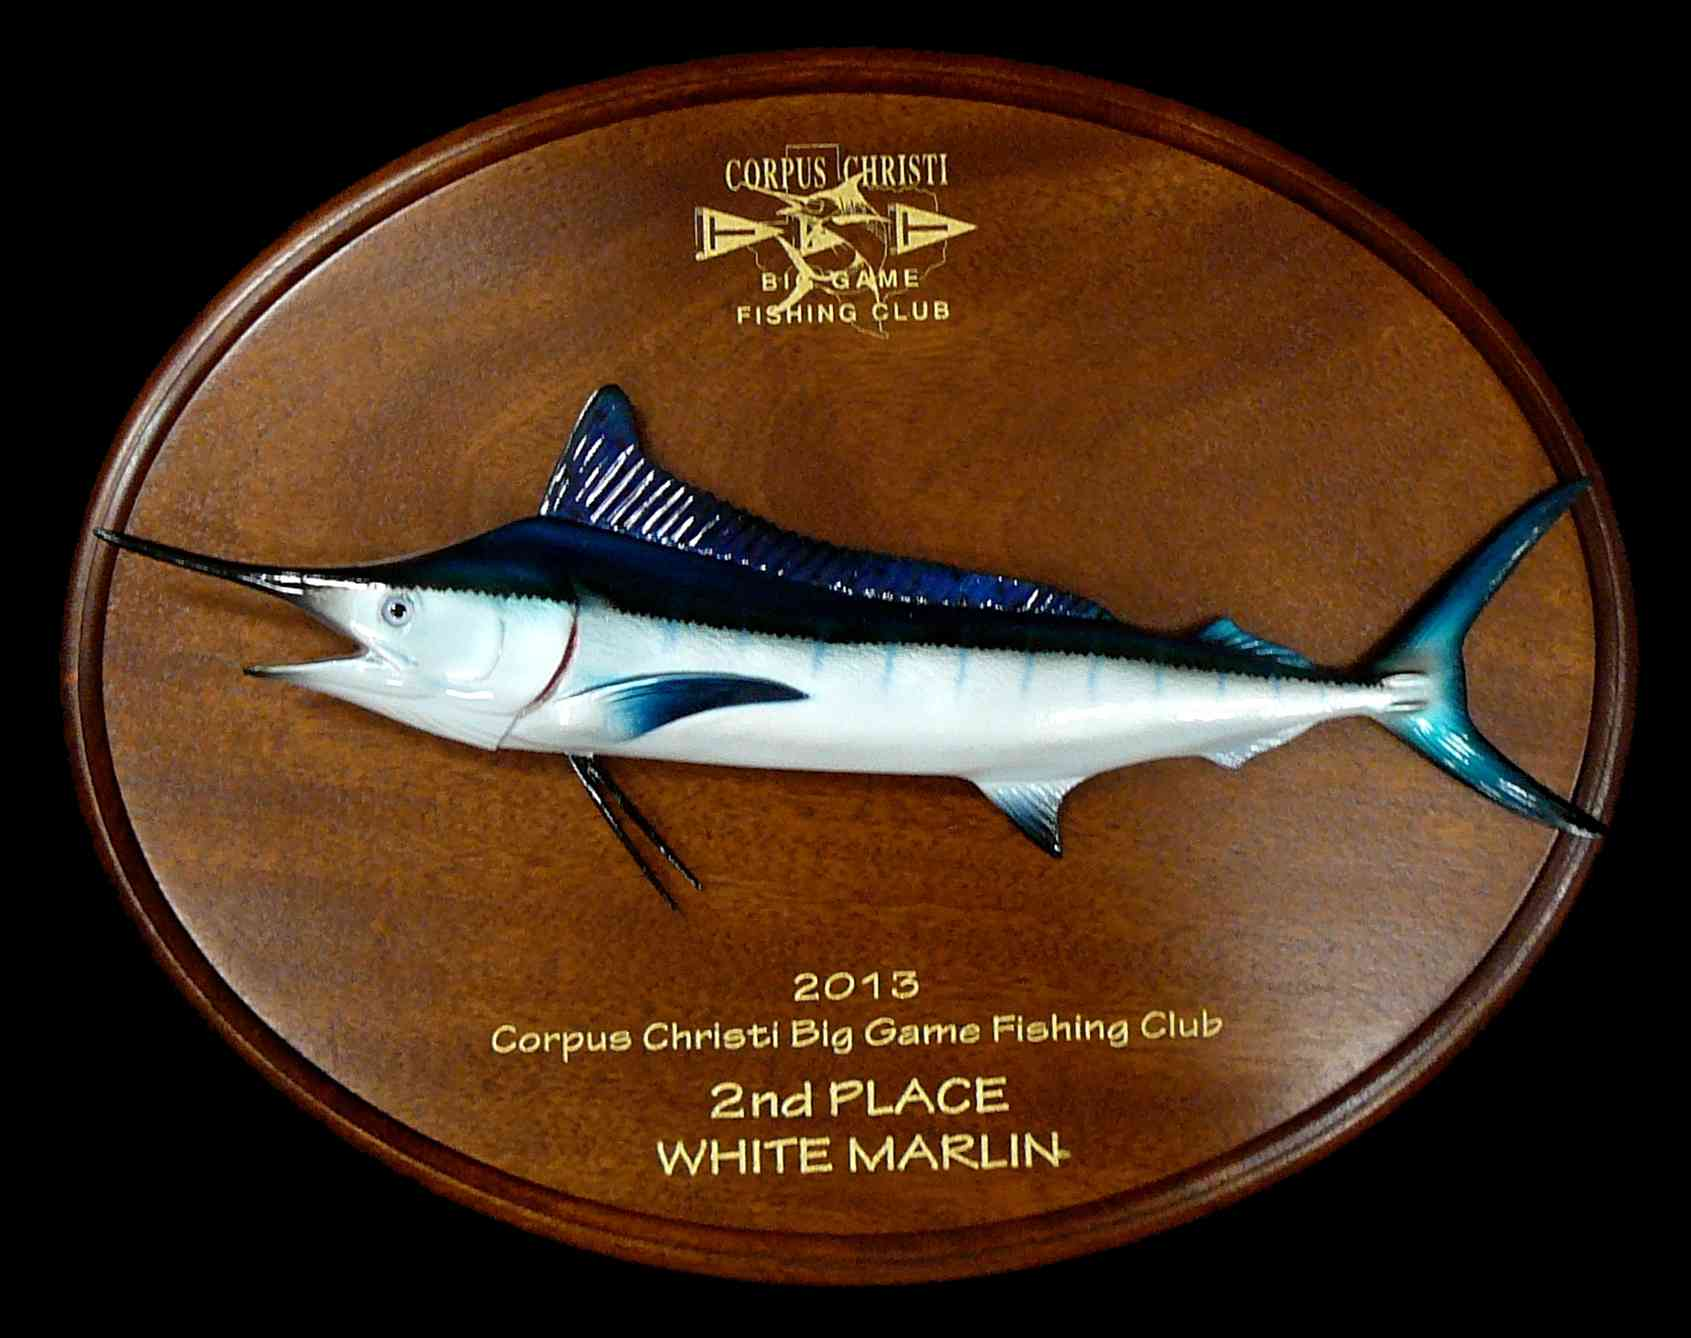 white_marlin_plaque_oval.jpg